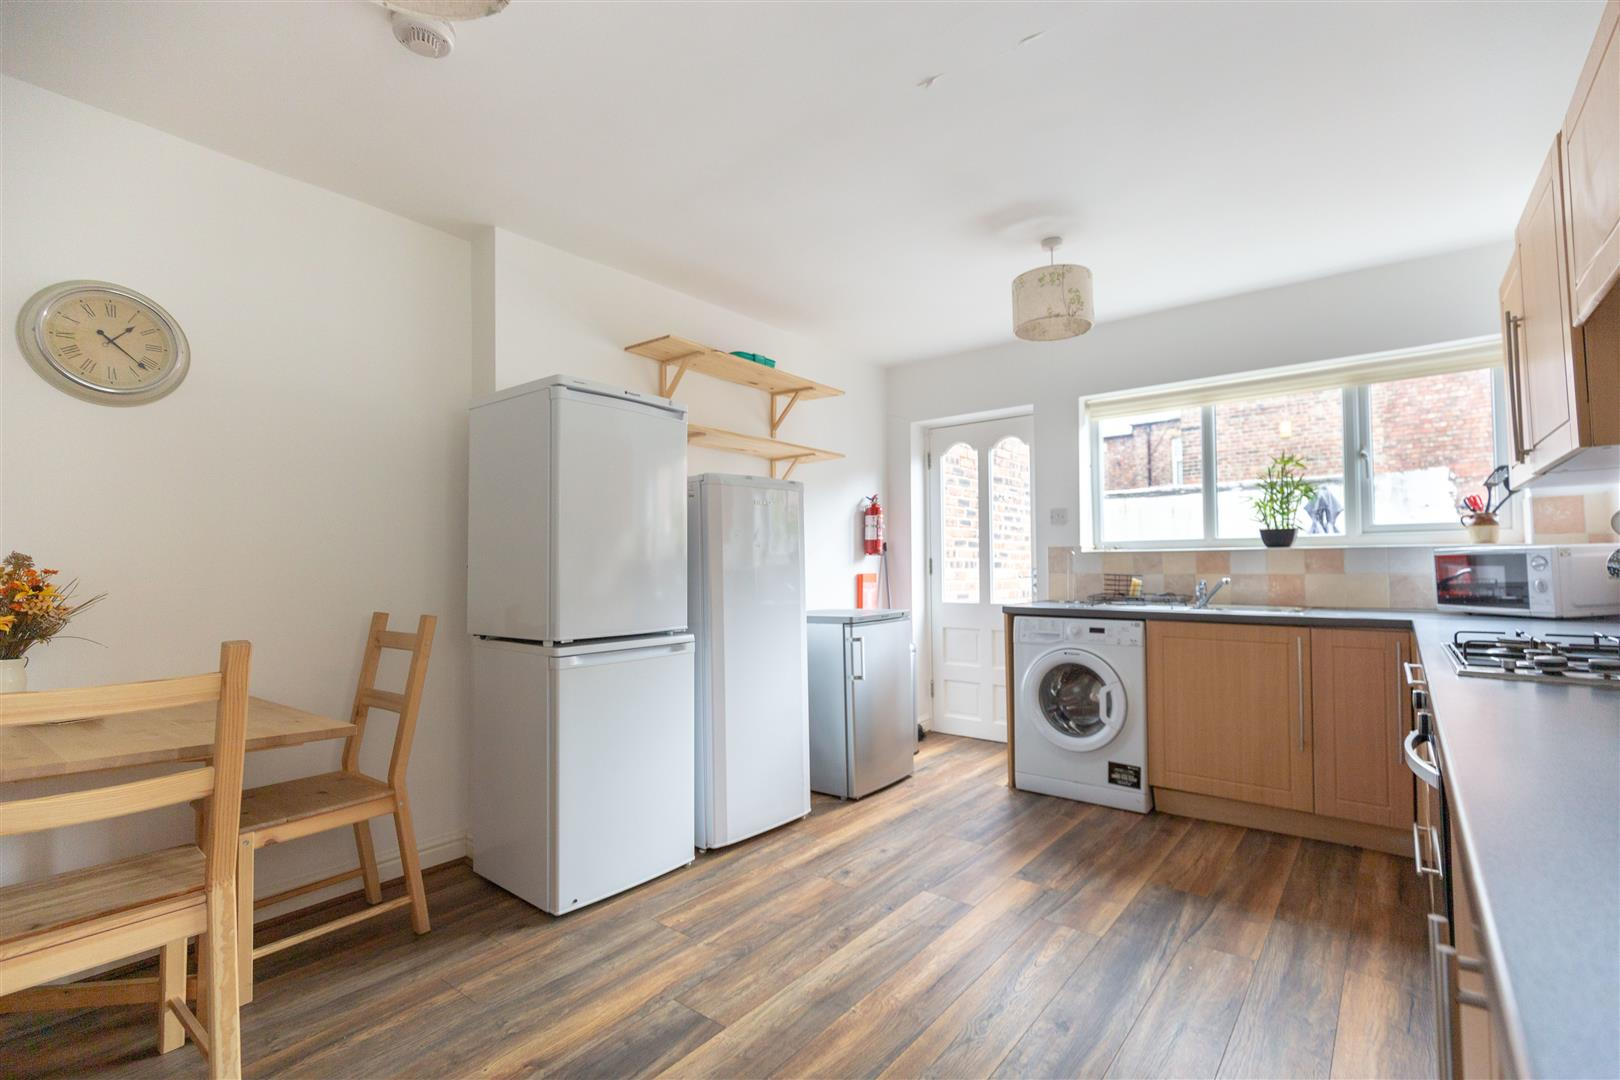 6 bed terraced house to rent in Newcastle Upon Tyne, NE6 5LR  - Property Image 2